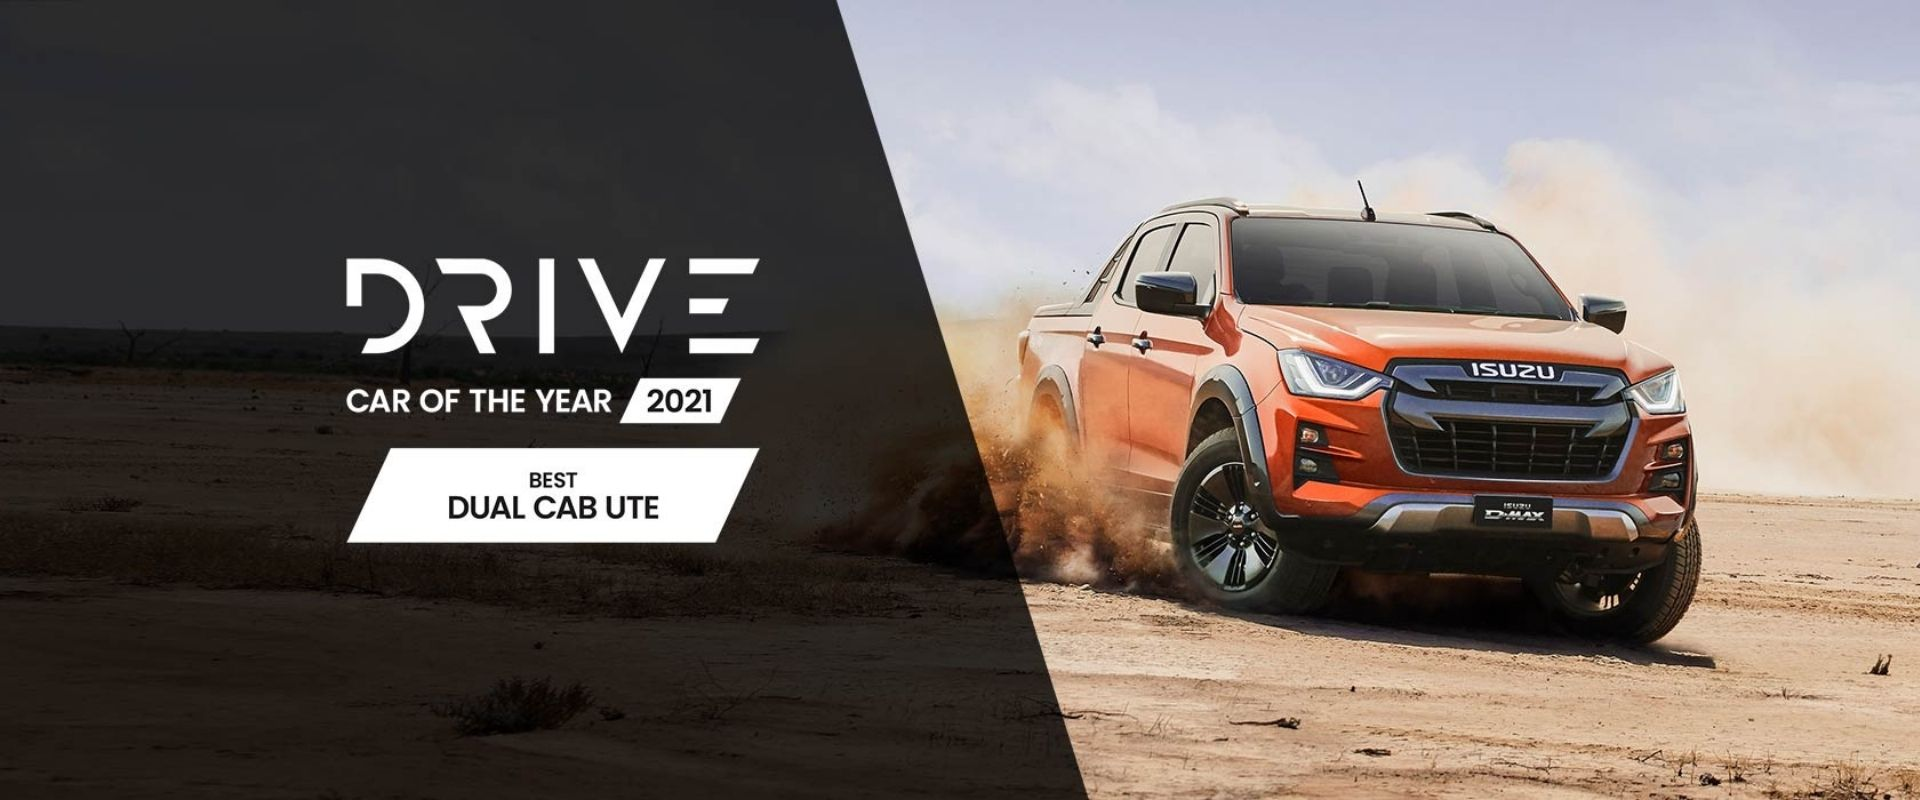 Drive Car Of The Year 2021 - Best Dual Cab Ute